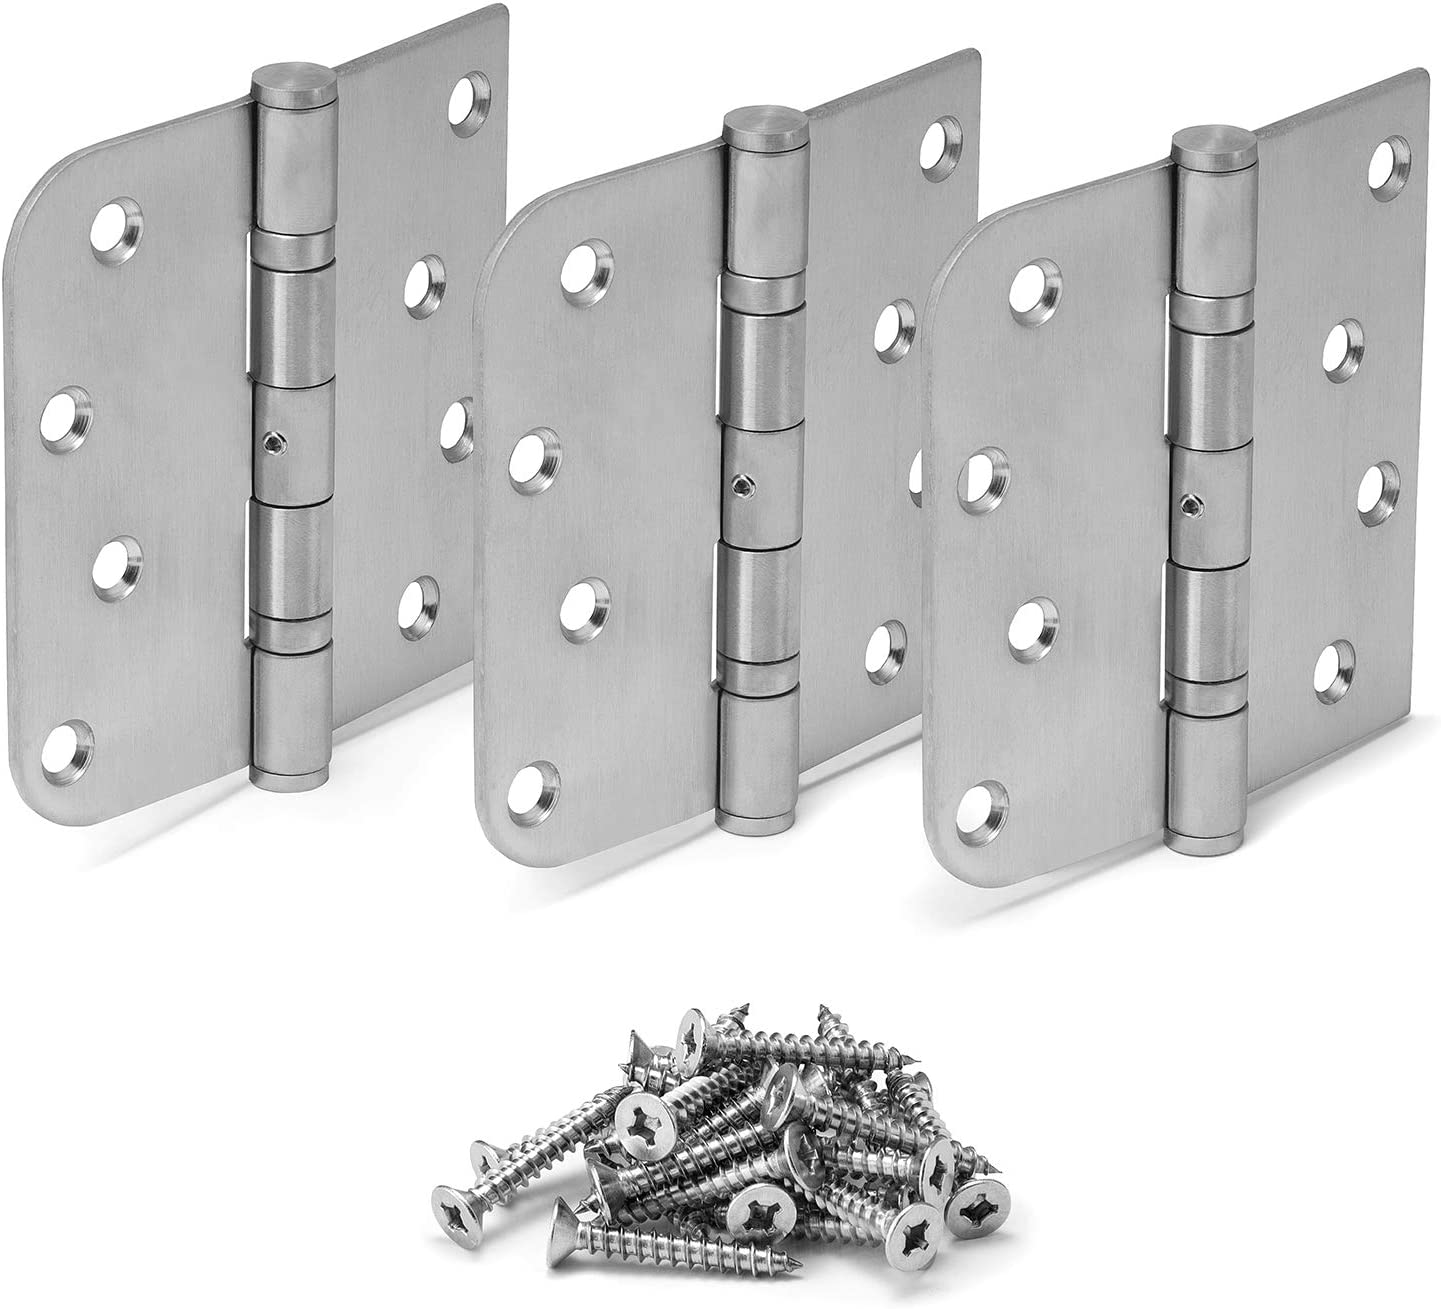 KS Super-cheap Hardware Stainless Steel Sale Ball Bearing X wit NRP Hinges 4